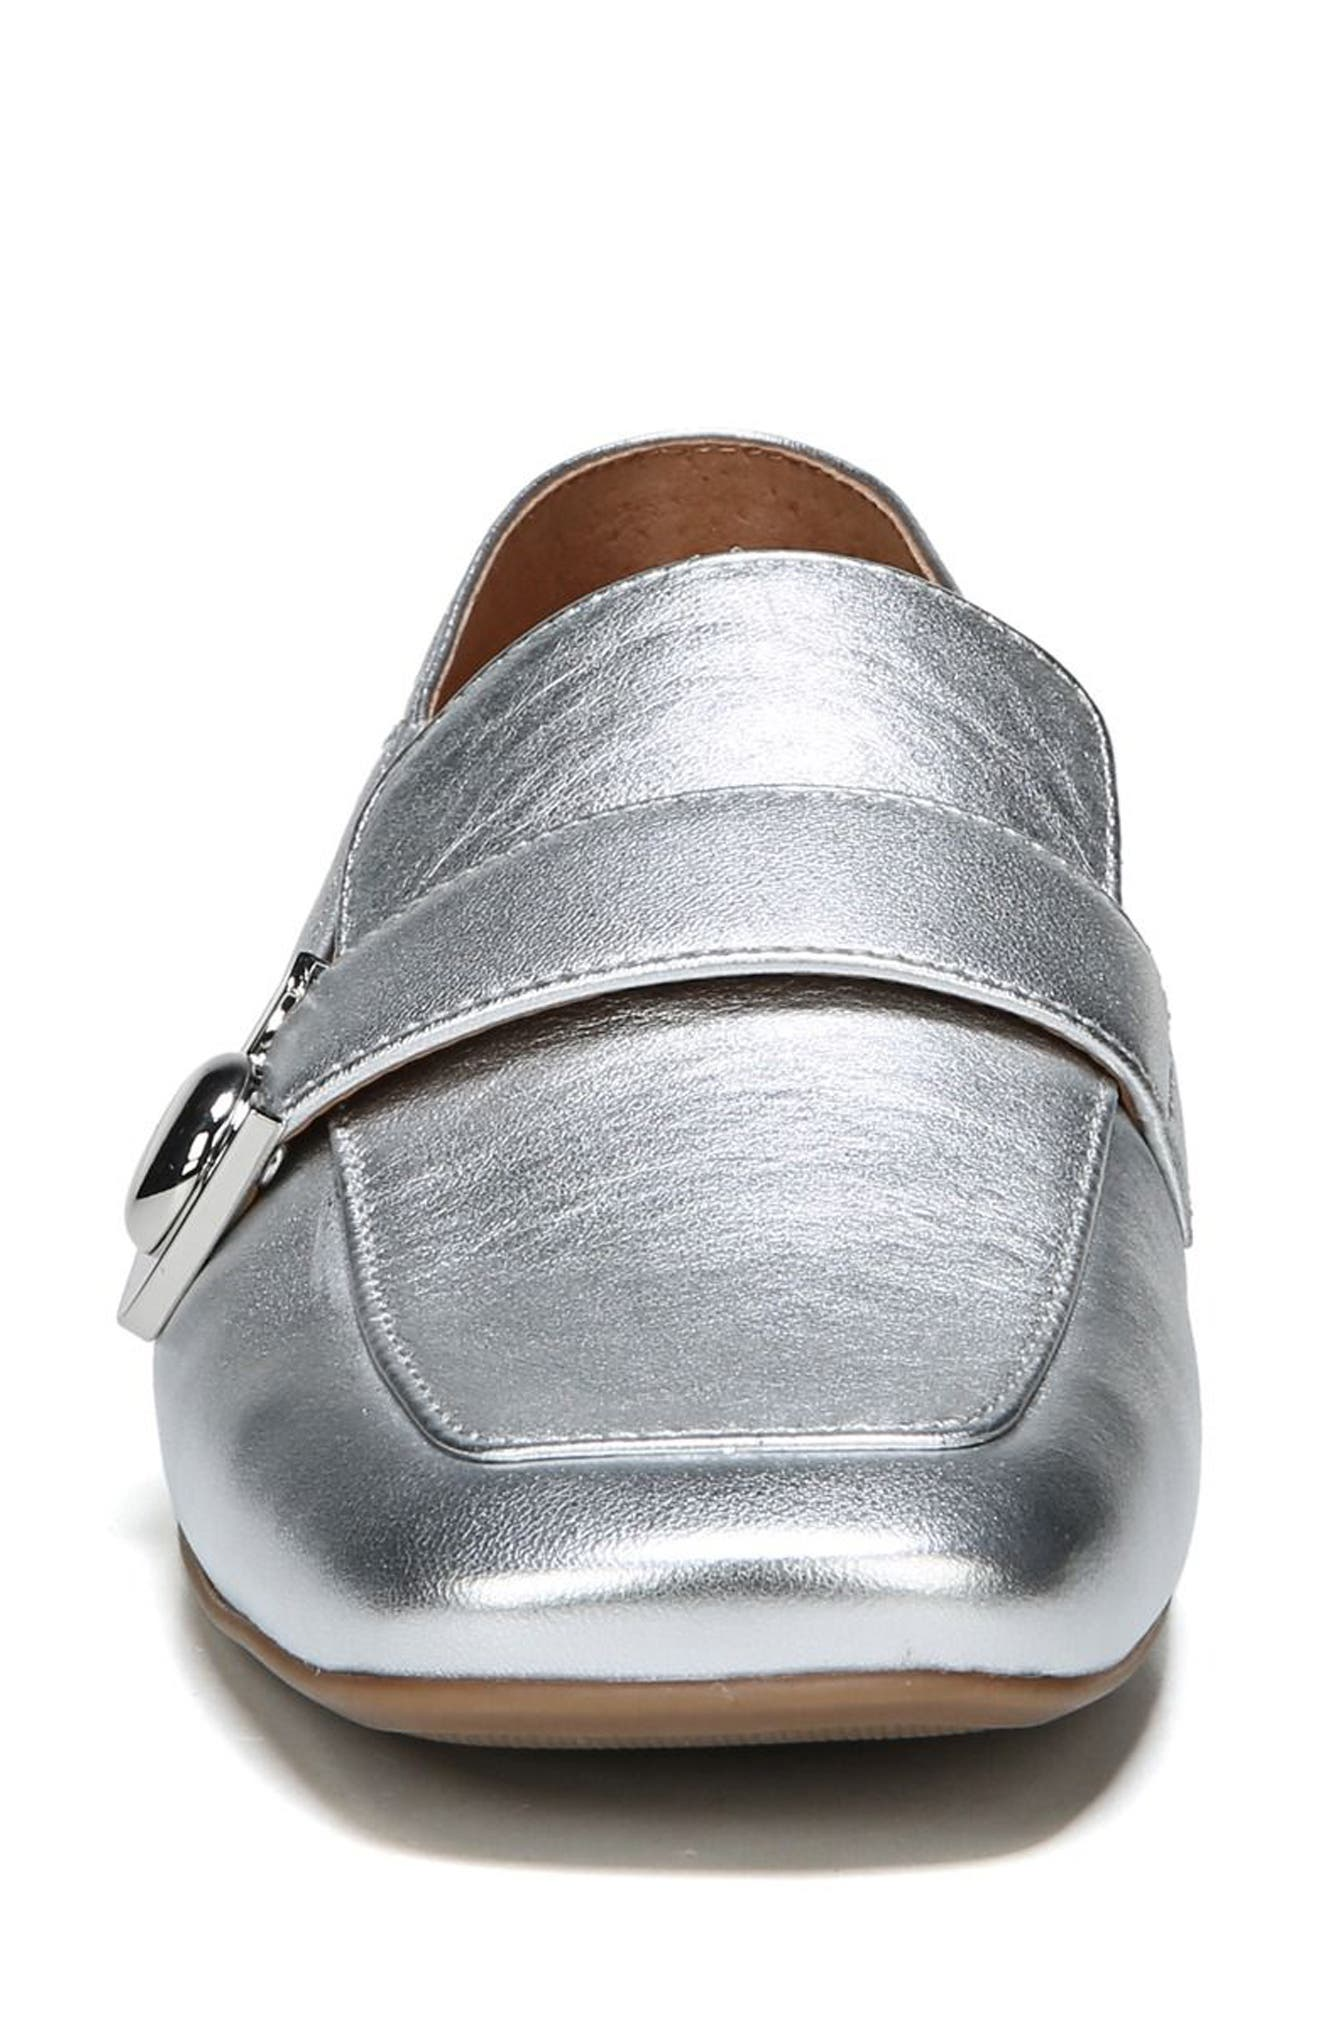 Valeres Loafer,                             Alternate thumbnail 6, color,                             Silver Metallic Leather